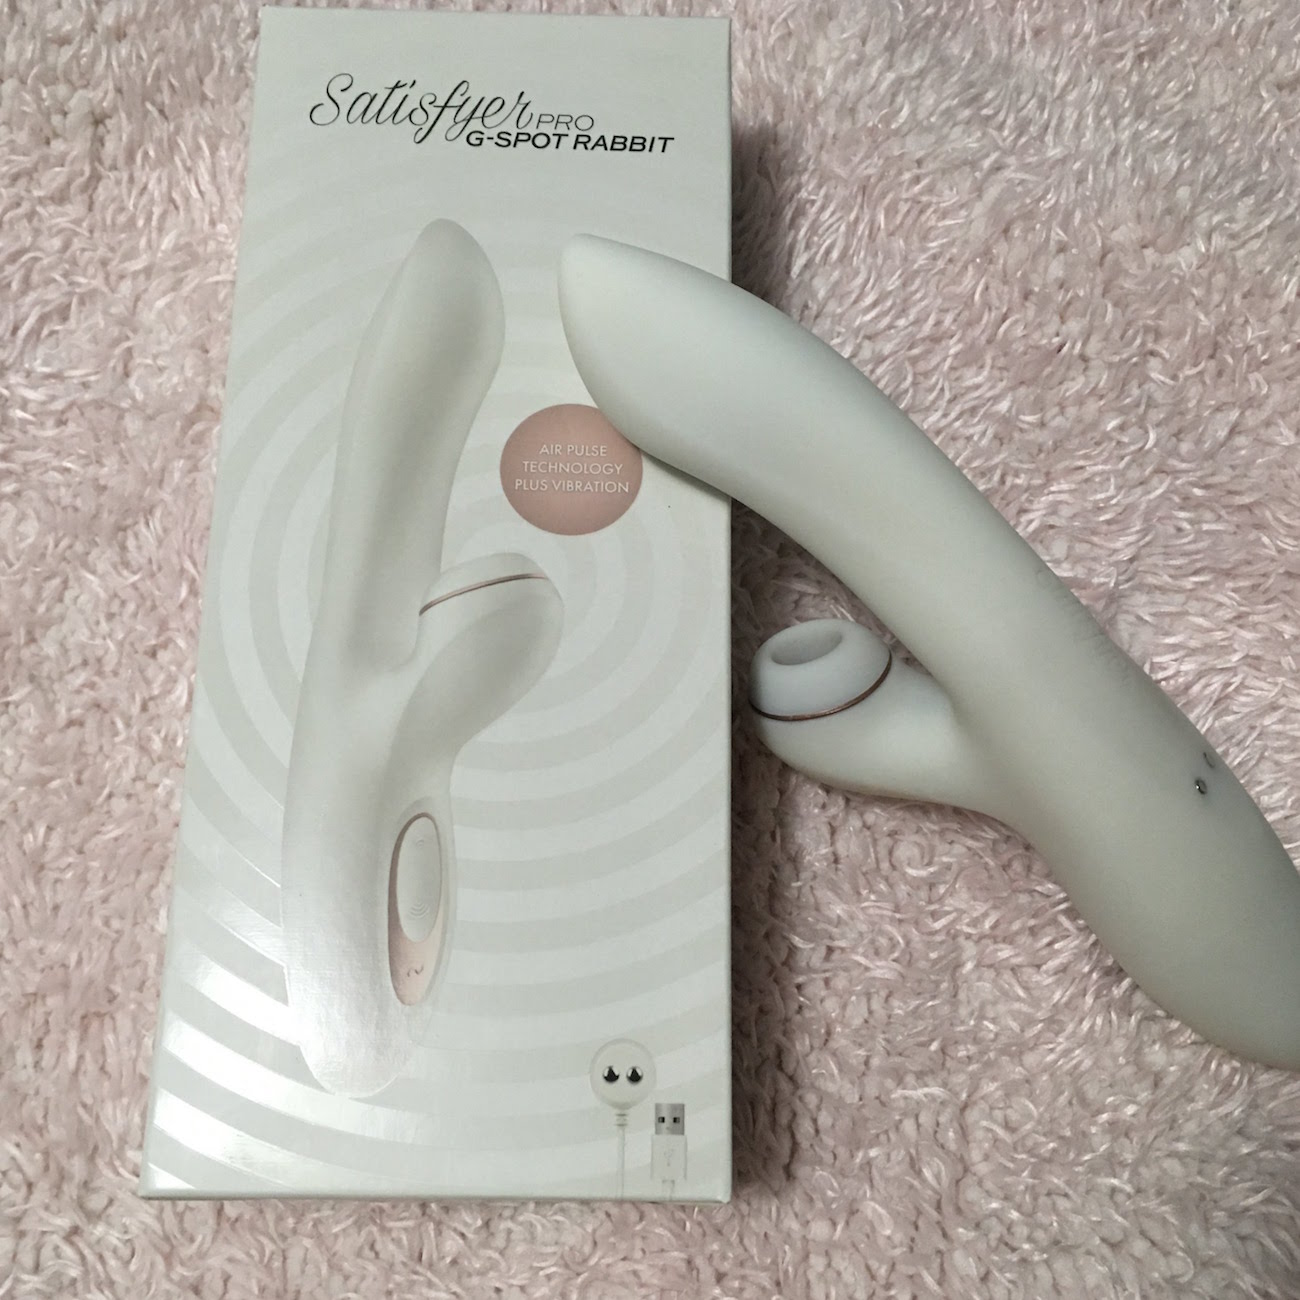 Satisfyer G-Spot Rabbit & packaging